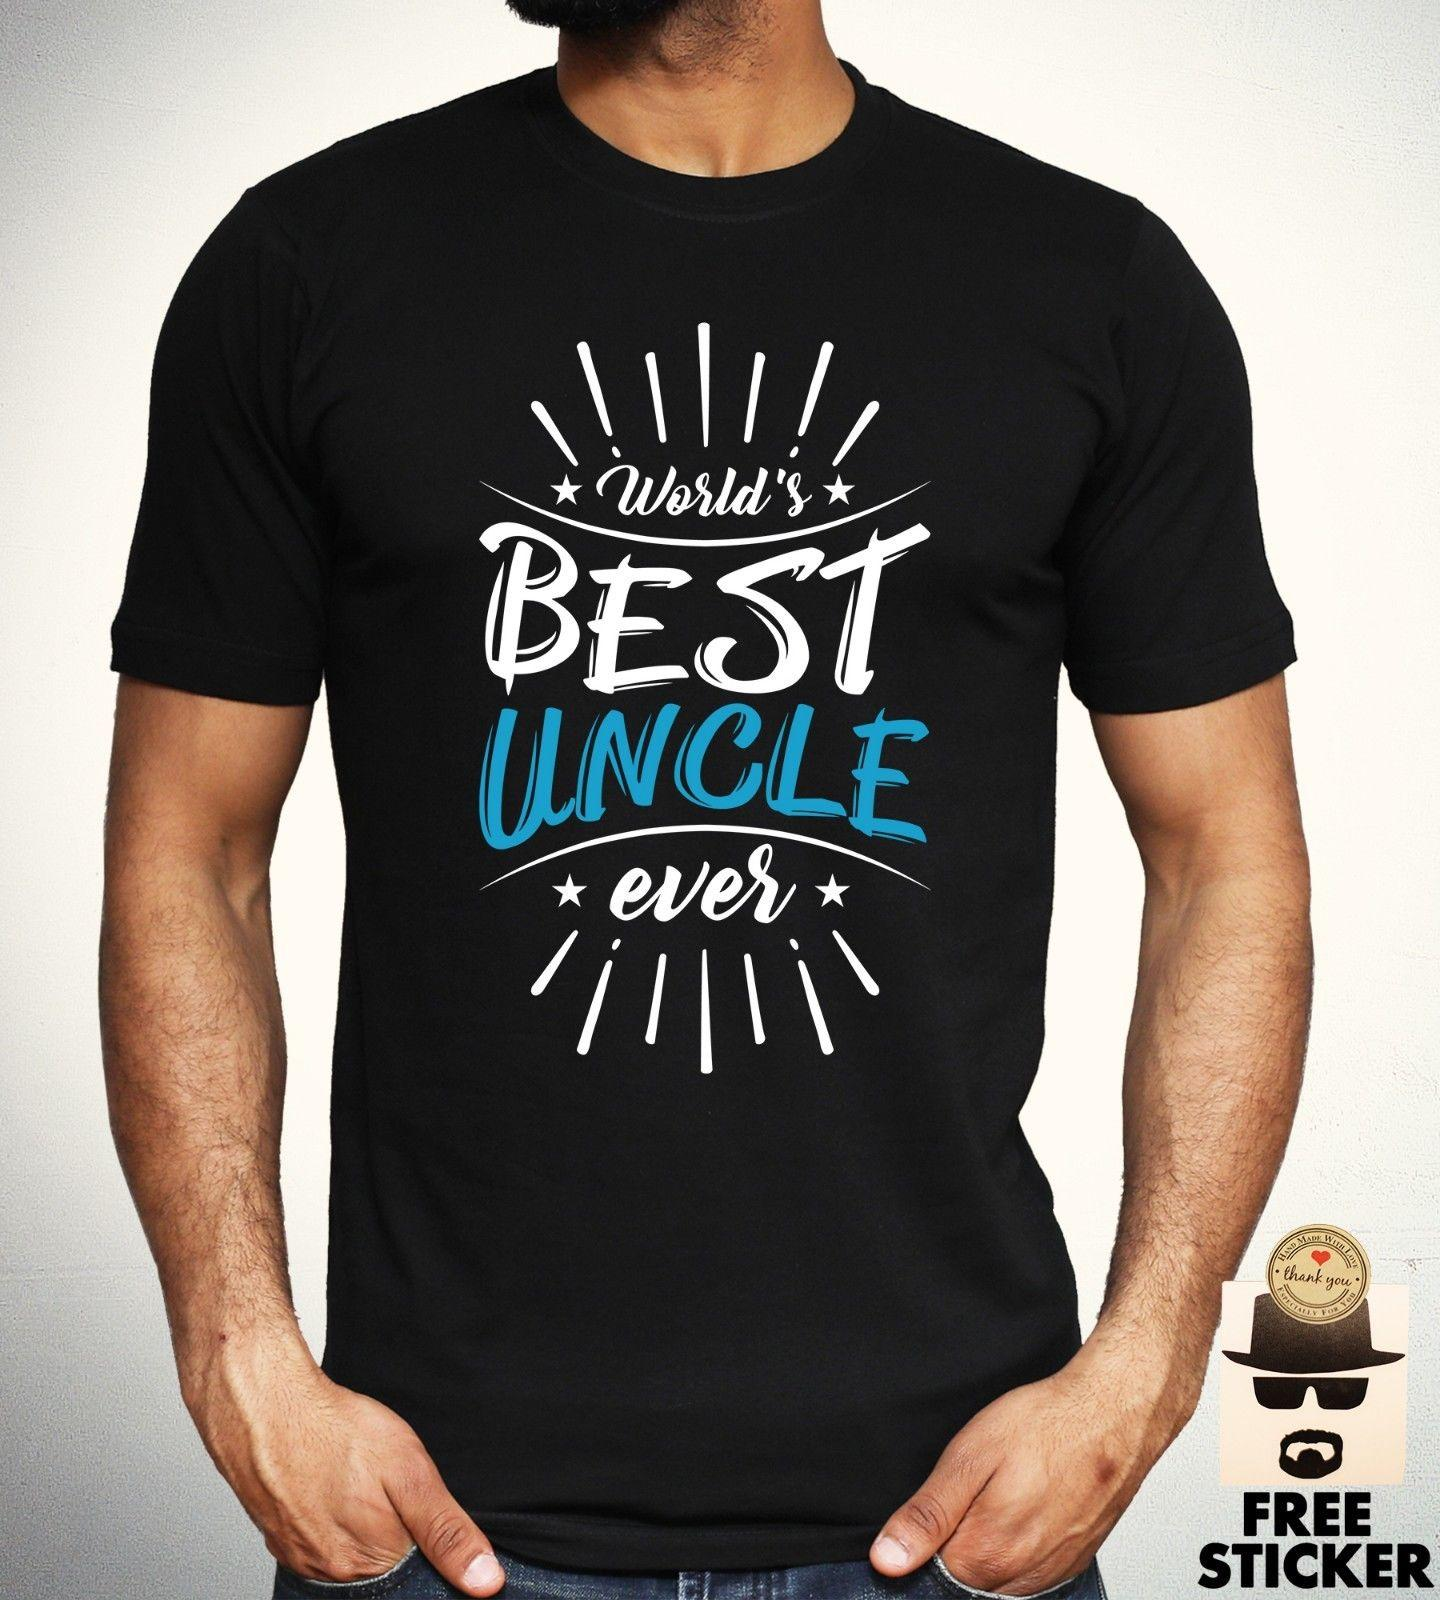 Worlds Best Uncle T Shirt Family Cool Birthday Gift Present Tee Mens Top Knitted Comfortable Fabric Street Style Men Design And Buy Shirts